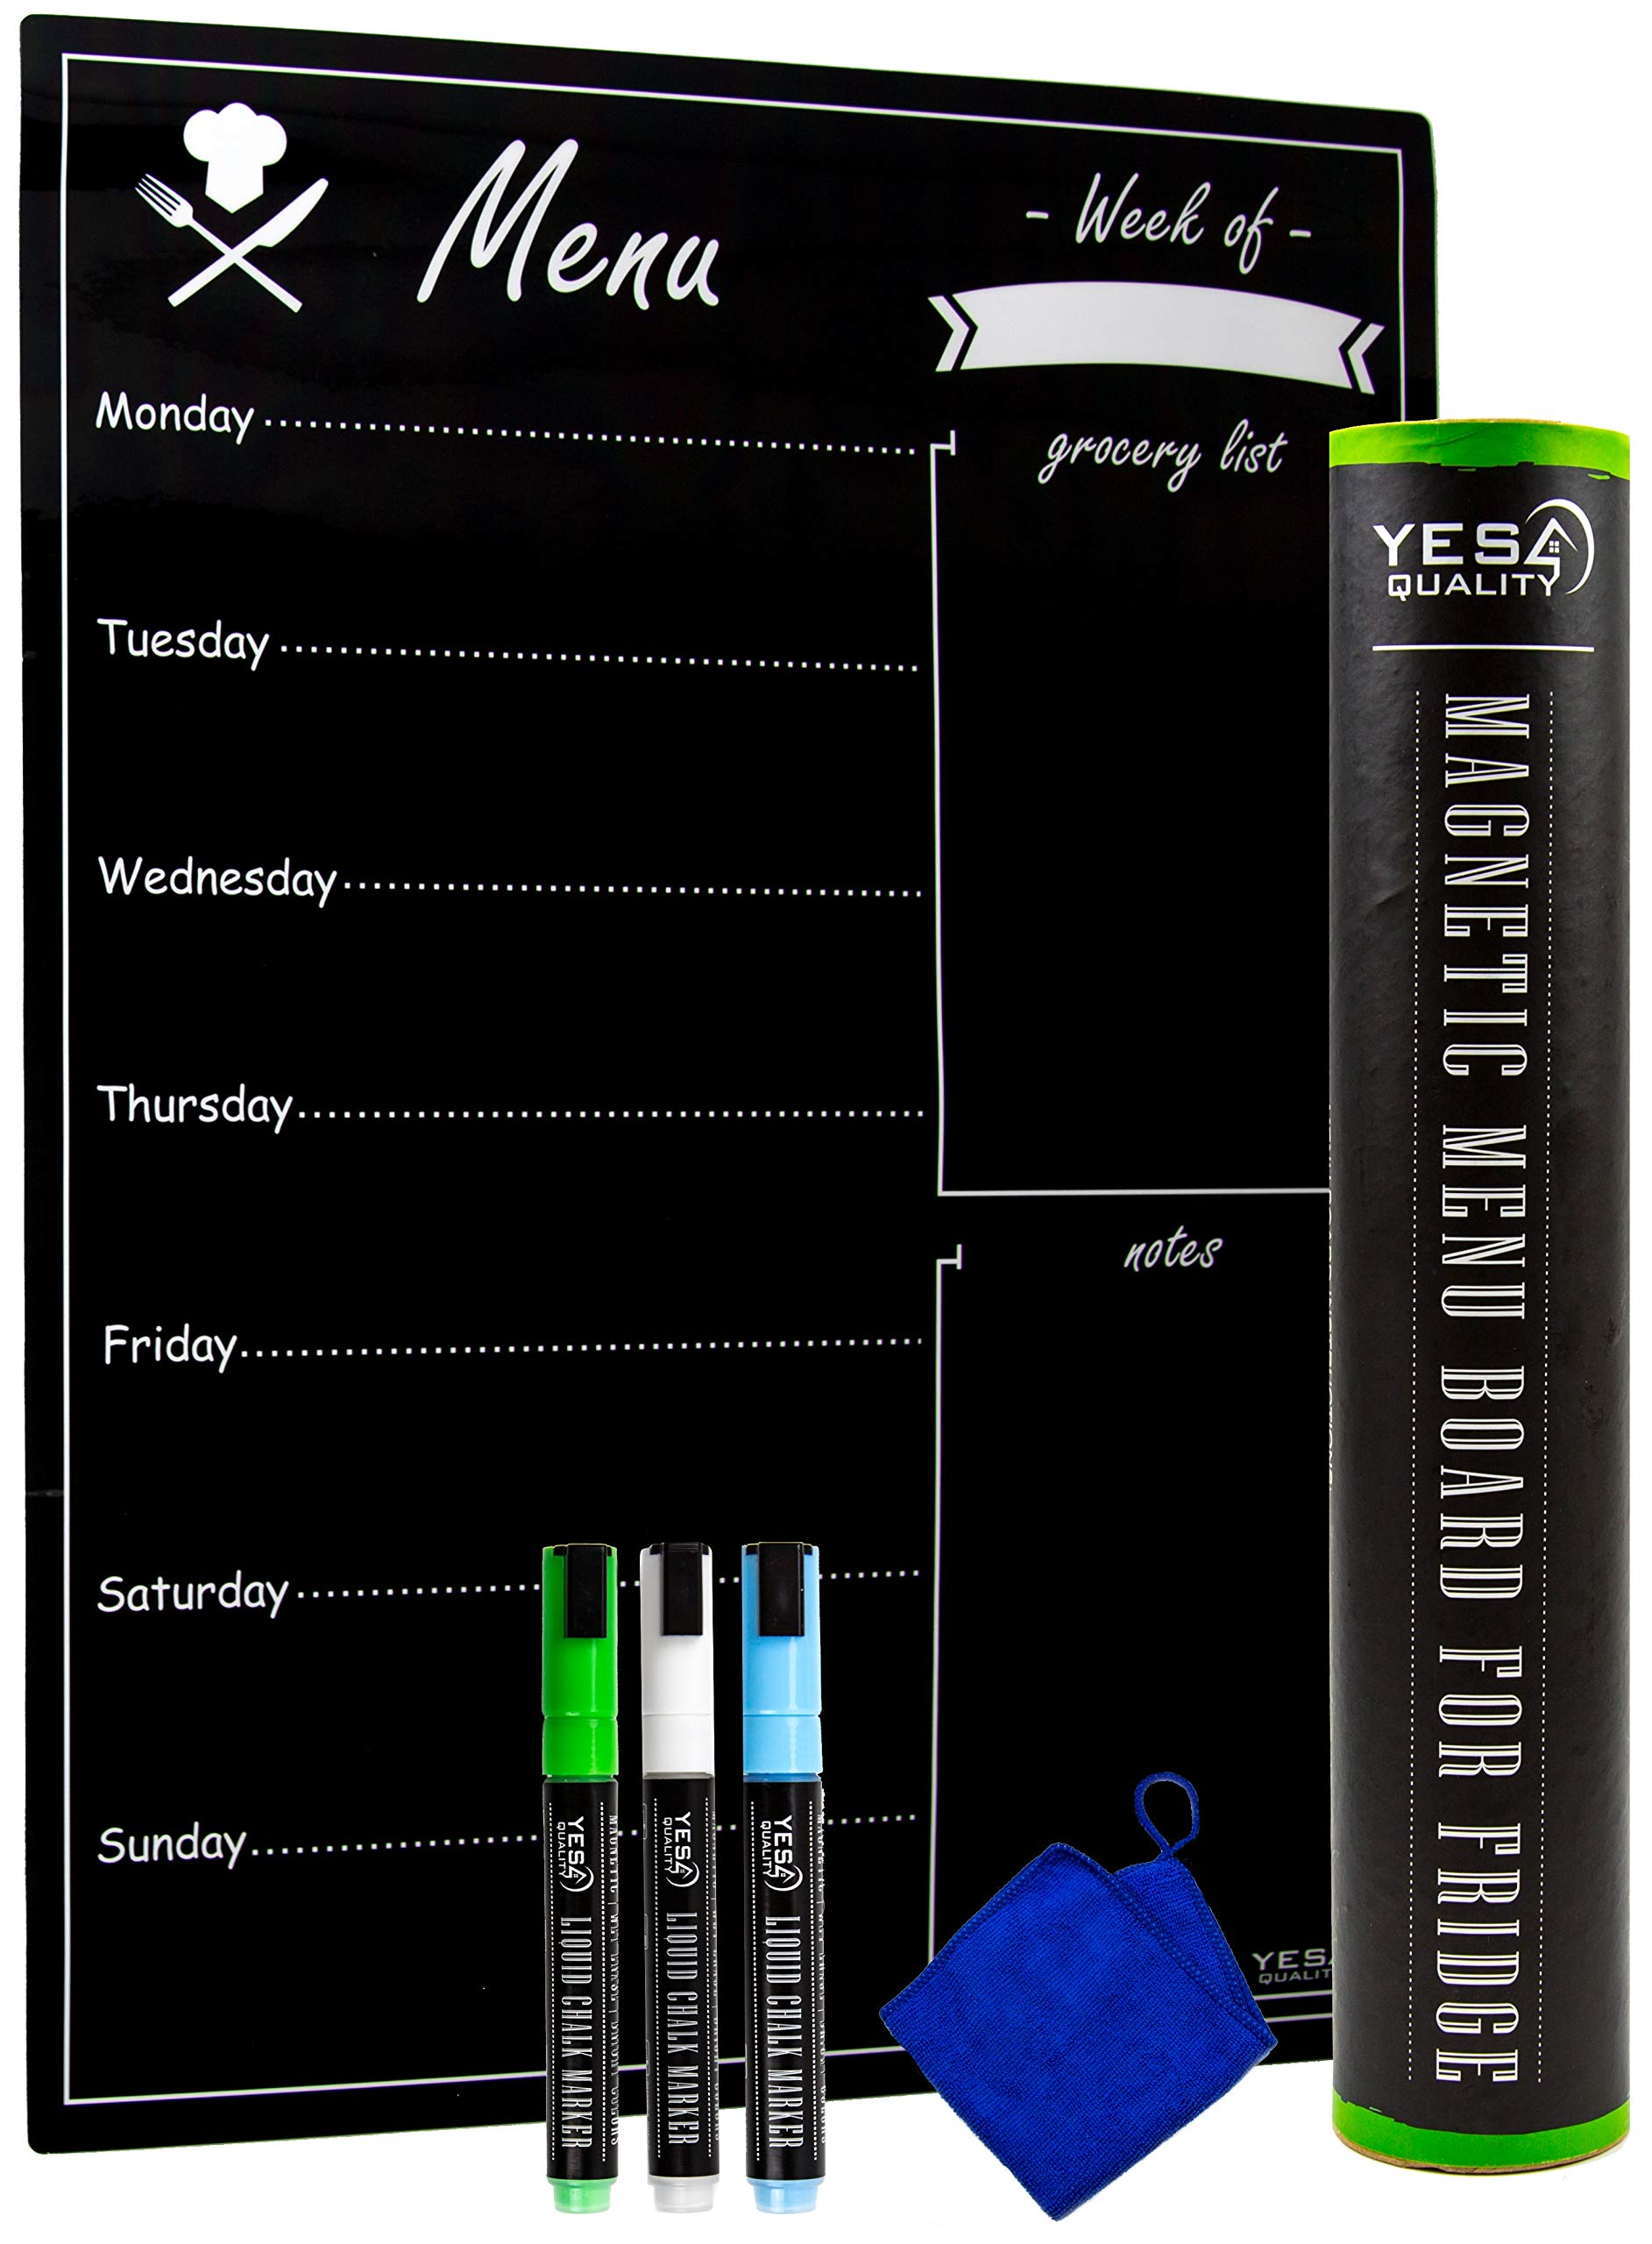 Magnetic Menu Board for Fridge with Easy-Erase Technology - Includes 3 Neon Chalk Markers and Eraser - Meal Planner Dry Erase Chalkboard by YES4QUALITY